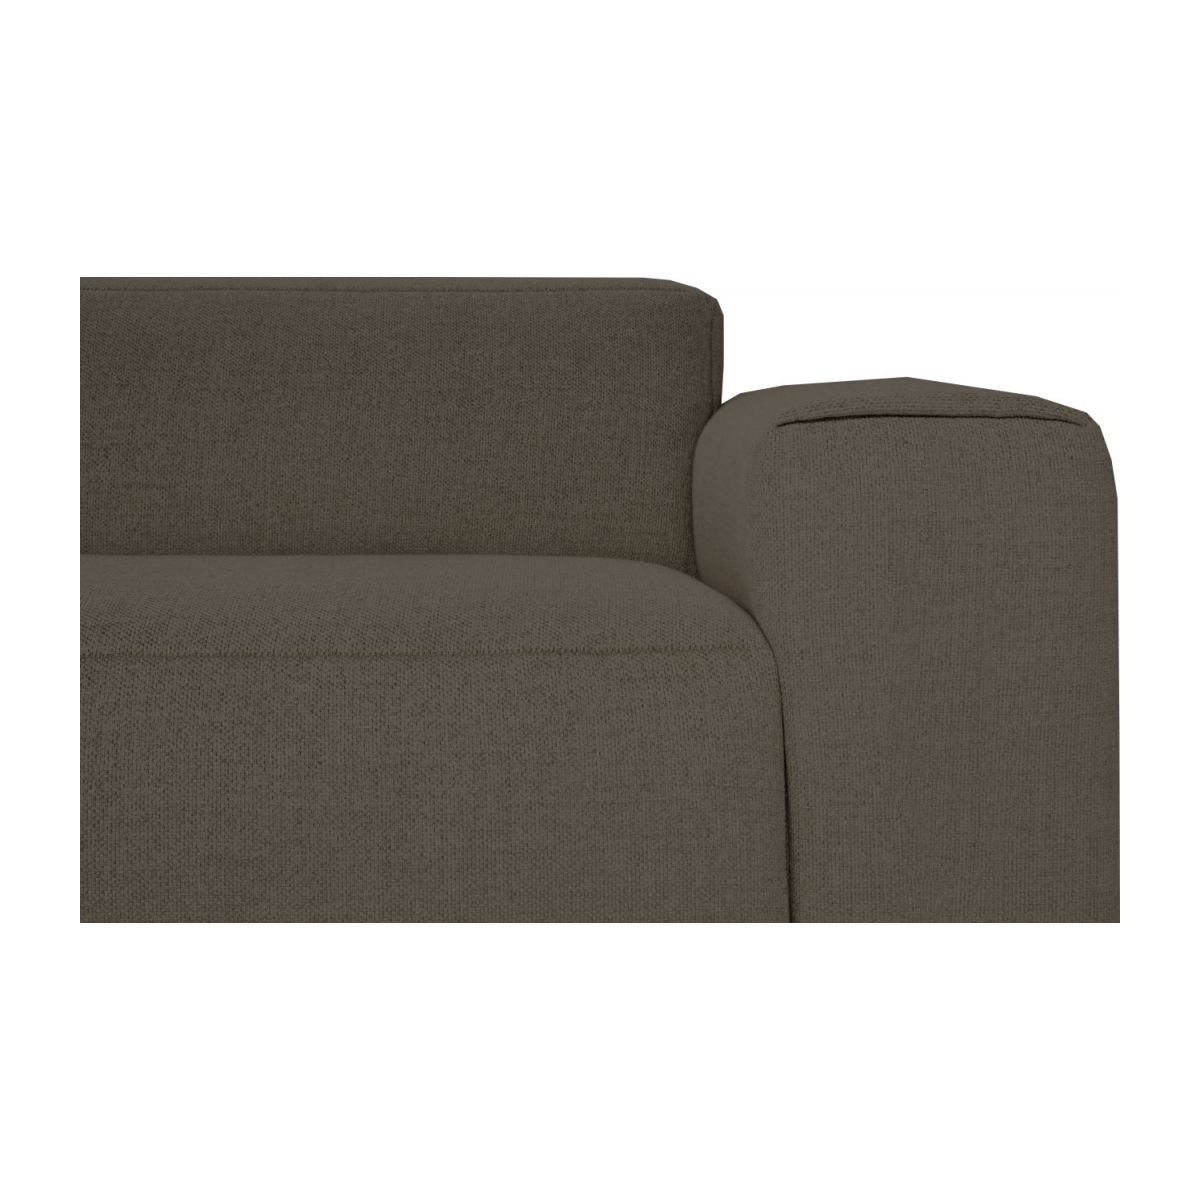 3 seater sofa in Lecce fabric, muscat n°5